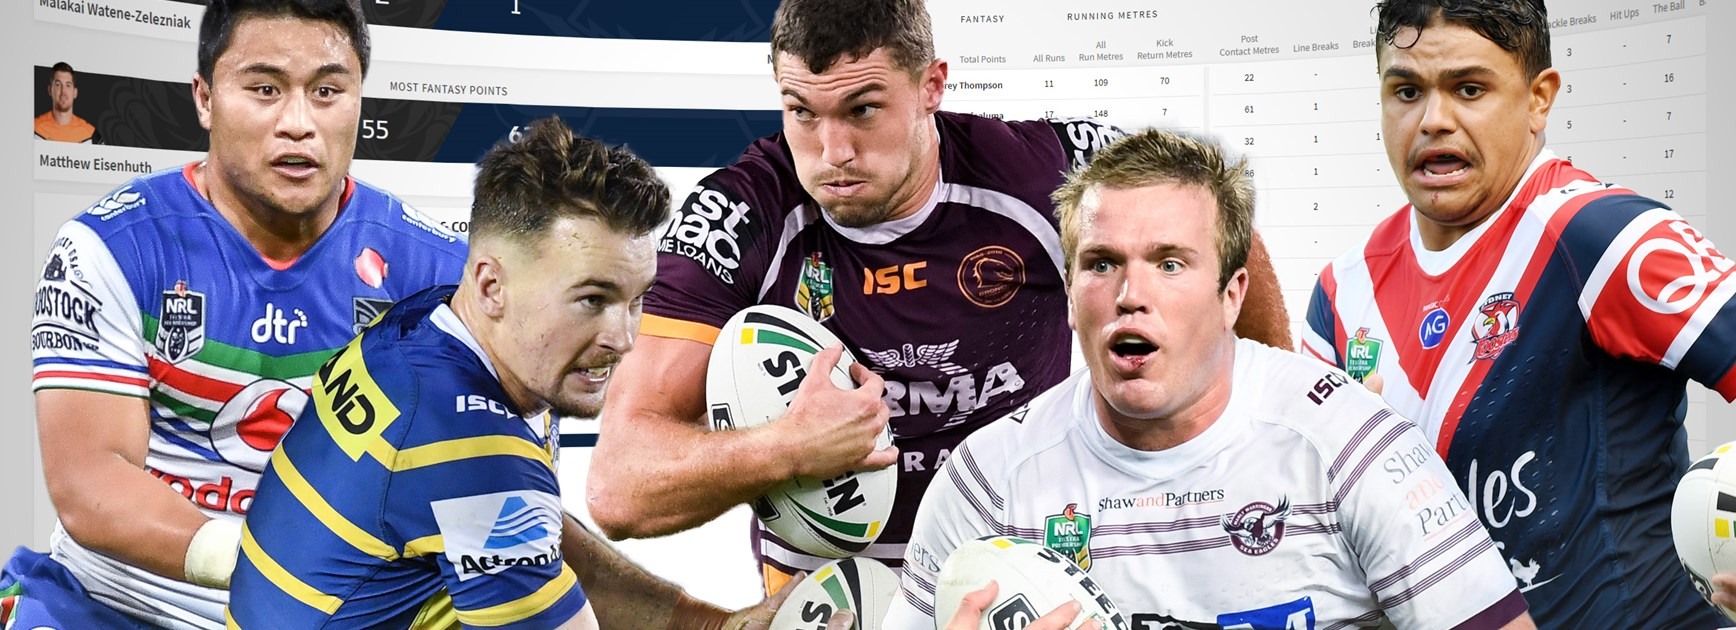 NRL.com takes players statistics to a new level